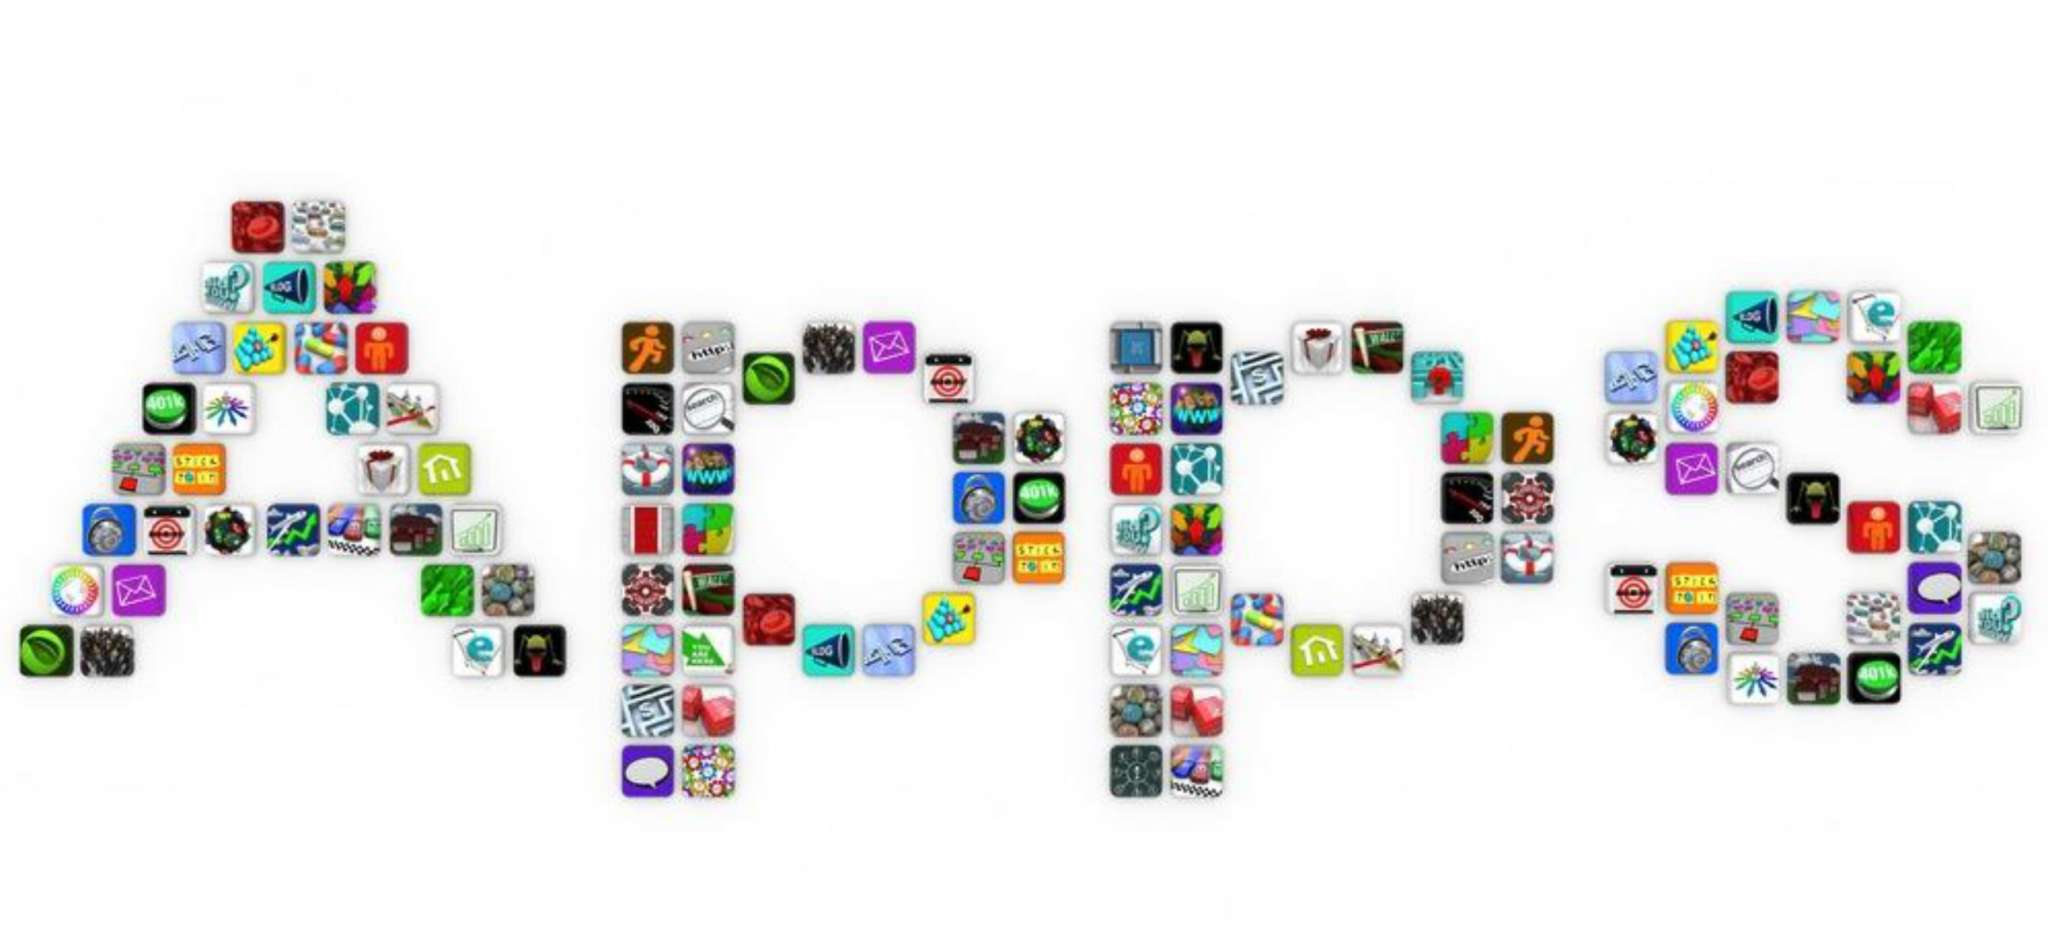 apps-image2